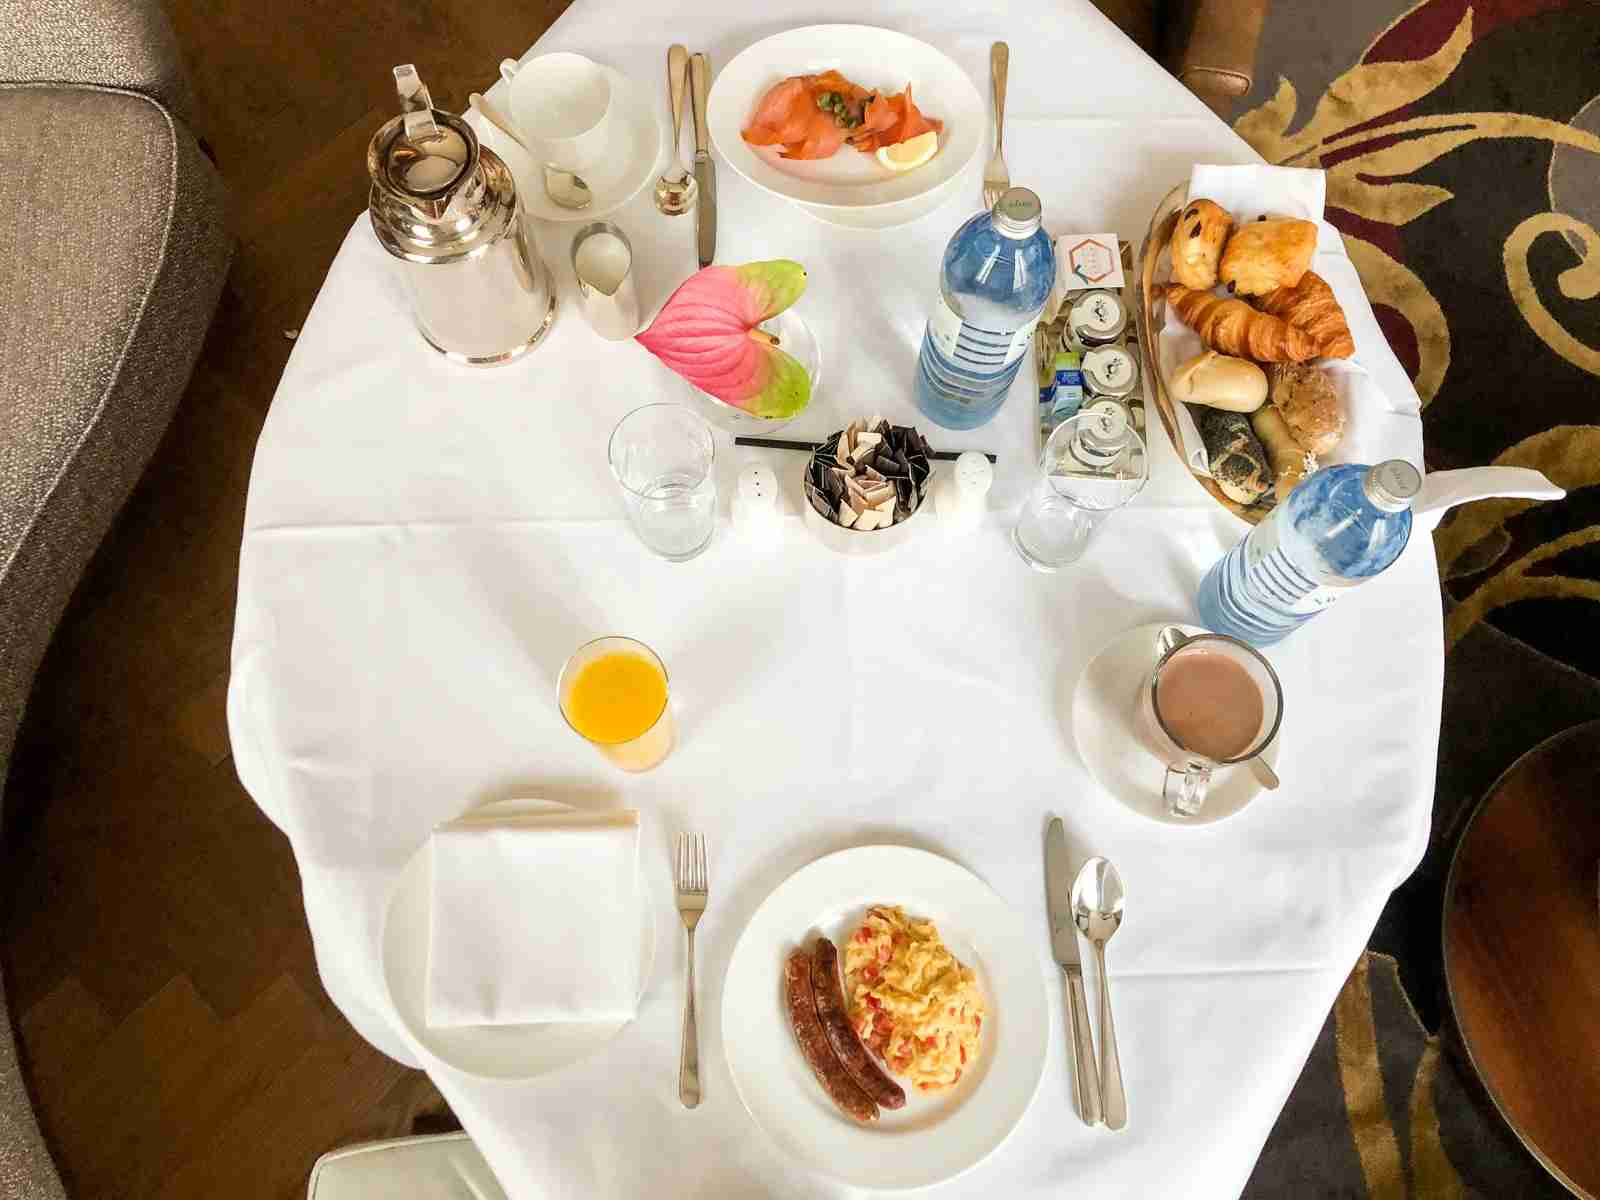 Free room service breakfast at the Park Hyatt Vienna thanks to Hyatt Globalist status